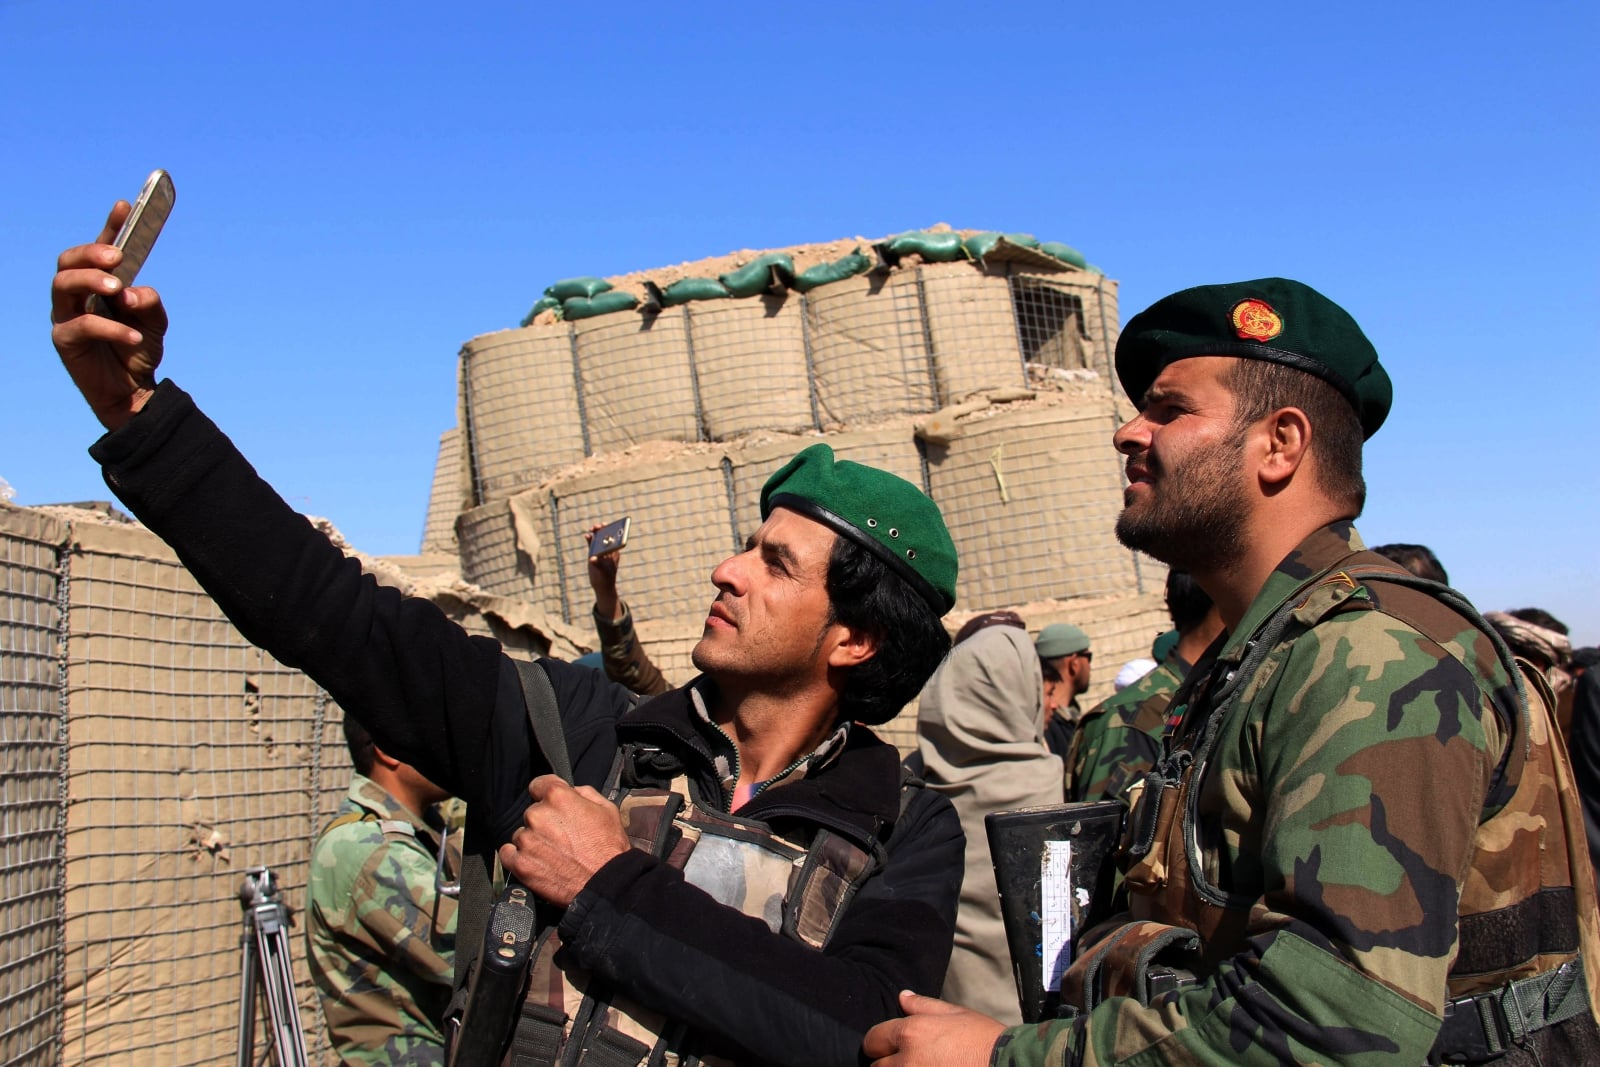 epa06503226 Afghan security forces take selfie as they patrol in Marjah district after they claimed to have cleared the area of Taliban militants, in Helmand, Afghanistan, 07 February 2018. Afghanistan is going through one of its bloodiest periods since the end of the NATO combat mission in 2015, although it continues to be involved in training programs of Afghan forces in the country.  EPA/WATAN YAR Dostawca: PAP/EPA.